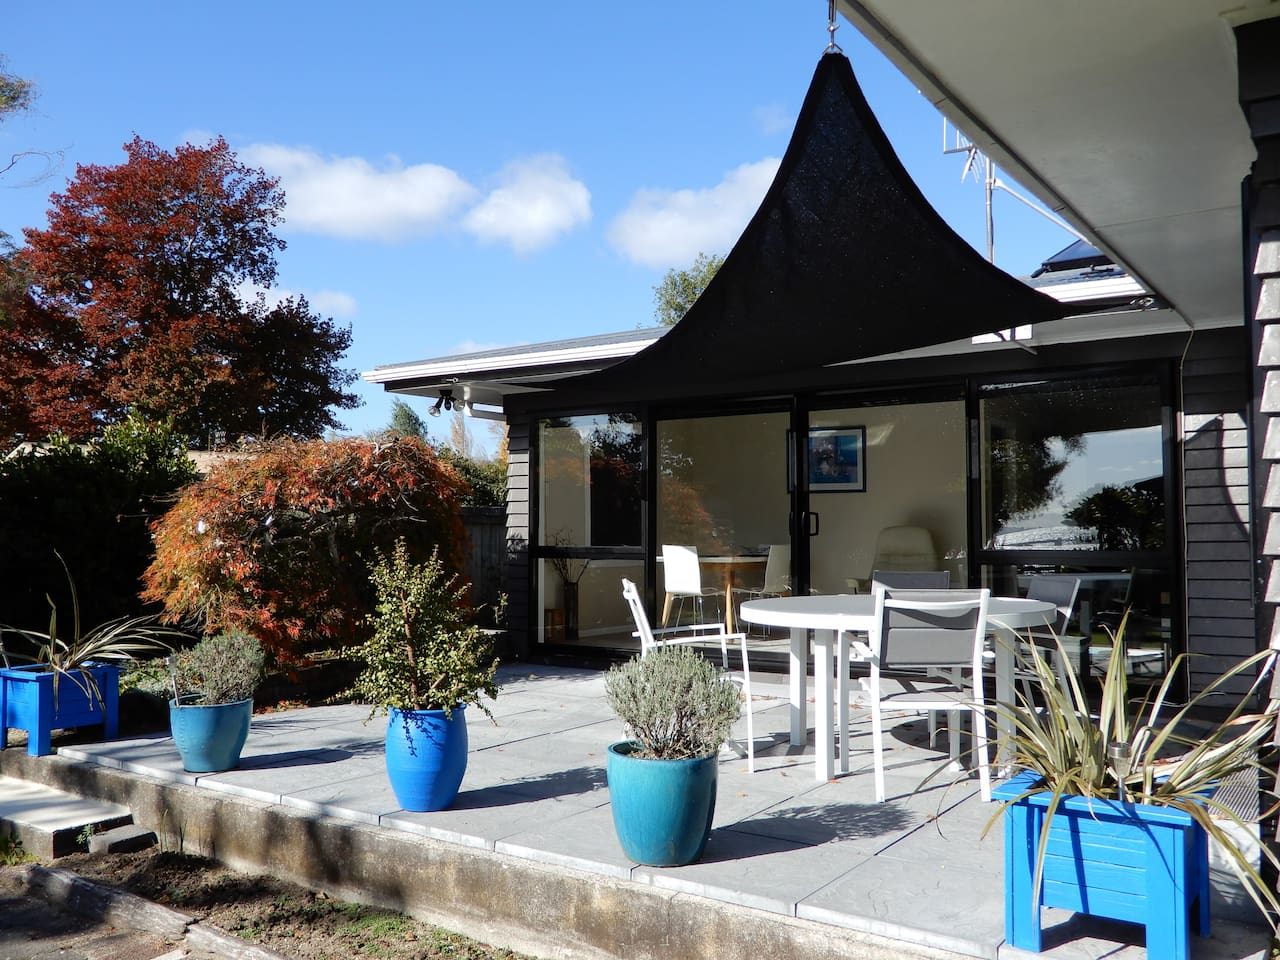 Enjoy a morning coffee on the deck under the sail with views to Lake Rotorua. BBQ for easy cooking.